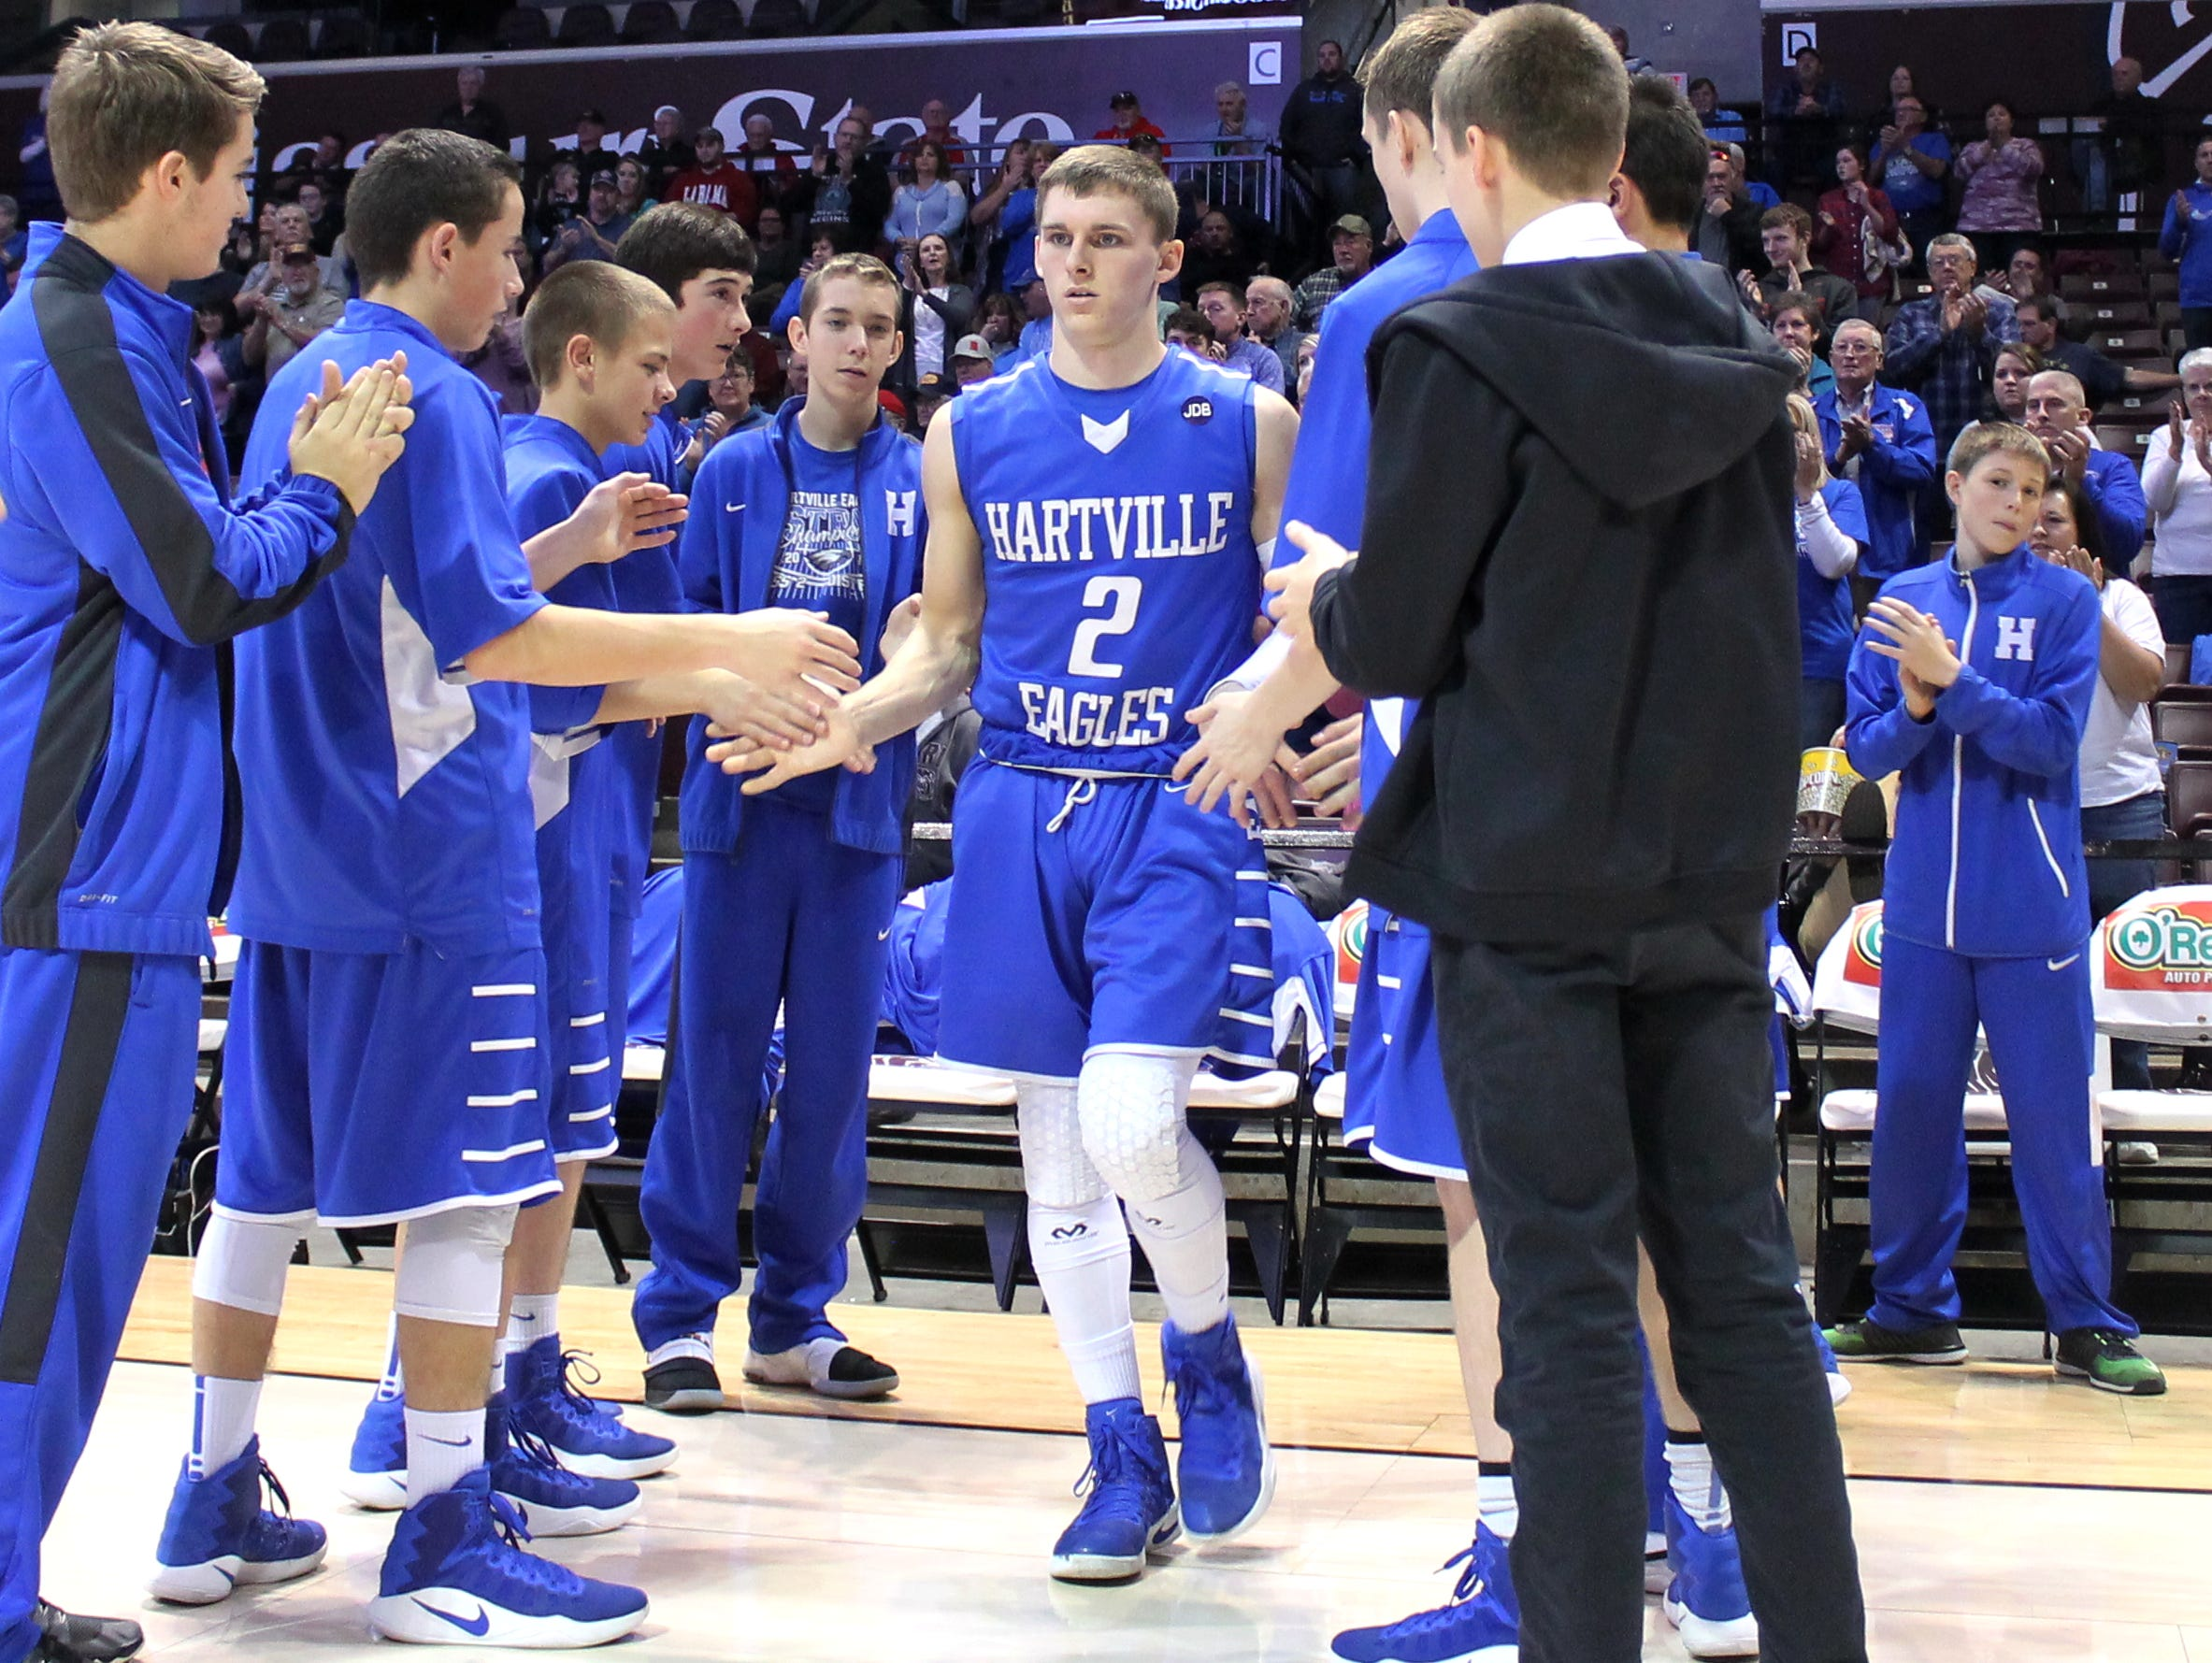 Dune Piper (2) scored 25 points in Hartville's 52-46 win over Springfield Catholic in the 71st Greenwood Blue and Gold Tournament at JQH Arena on Dec. 27, 2016.